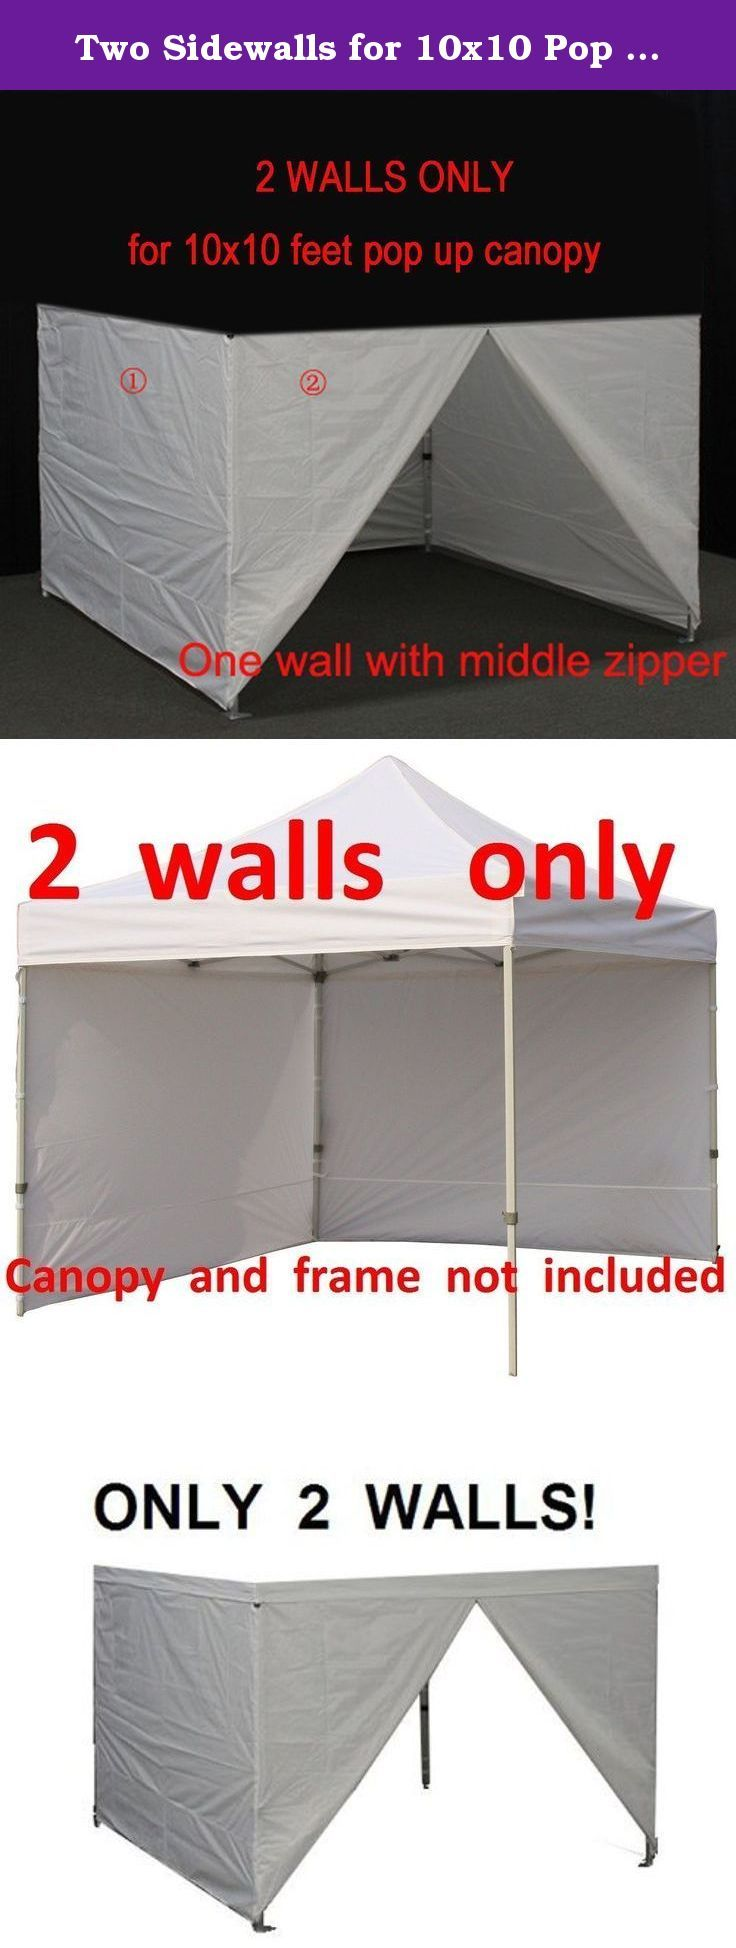 Two Sidewalls for 10x10 Pop up Canopy Party Tent Instant Outdoor Canopy Side Walls Zipper End (2 walls only) (White). Perfect for Arts and Craft Shows, Swap Meets, Flea Markets, Garage Sales, Fairs, Bake Sales, Camping, Picnics, Parties, Sporting Events... the possibilities are endless!.